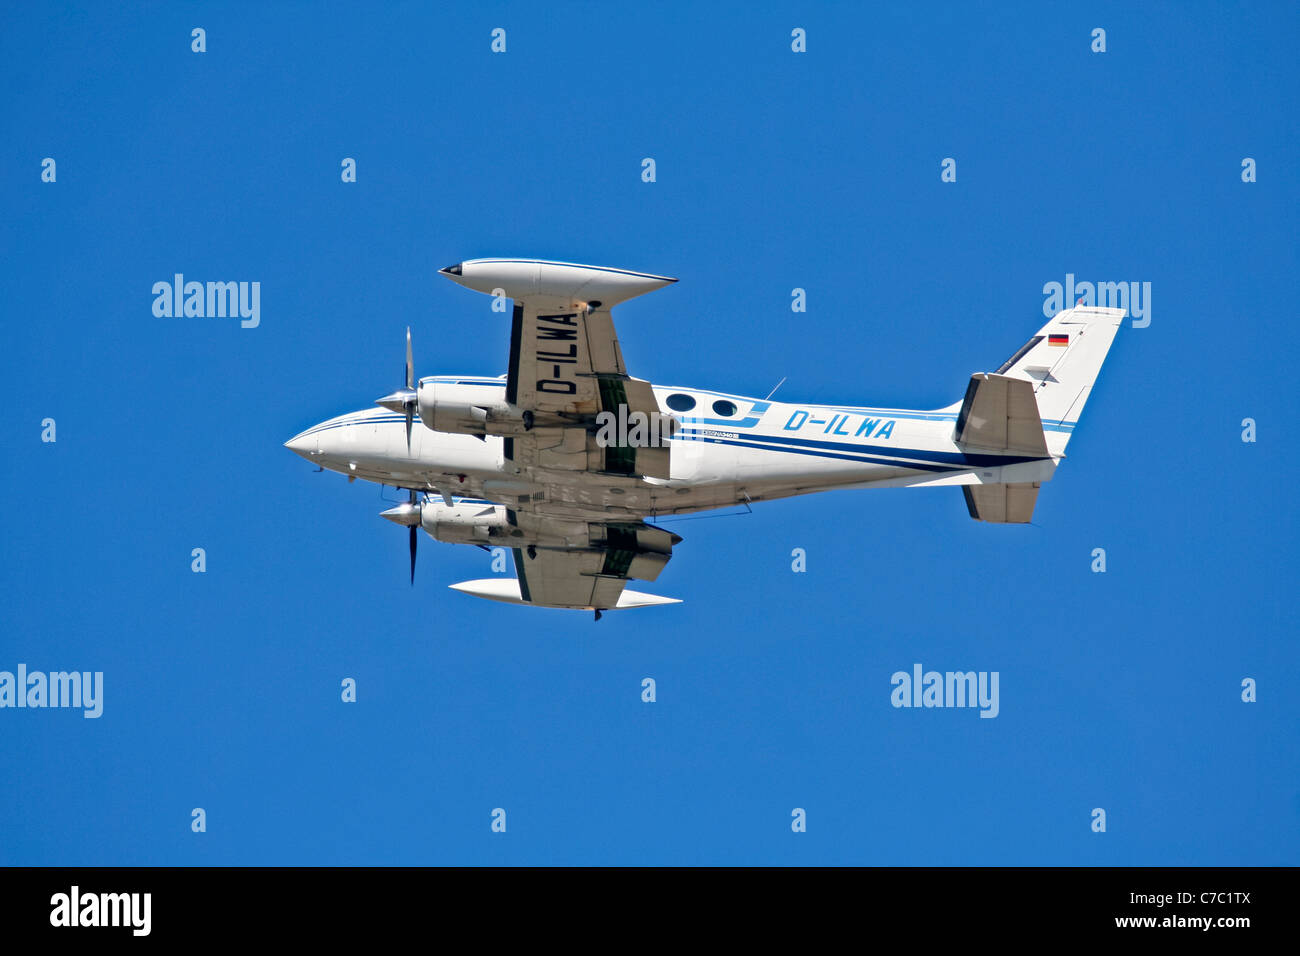 A Cessna 340 twin engine aircraft flying low against a great blue sky - Stock Image